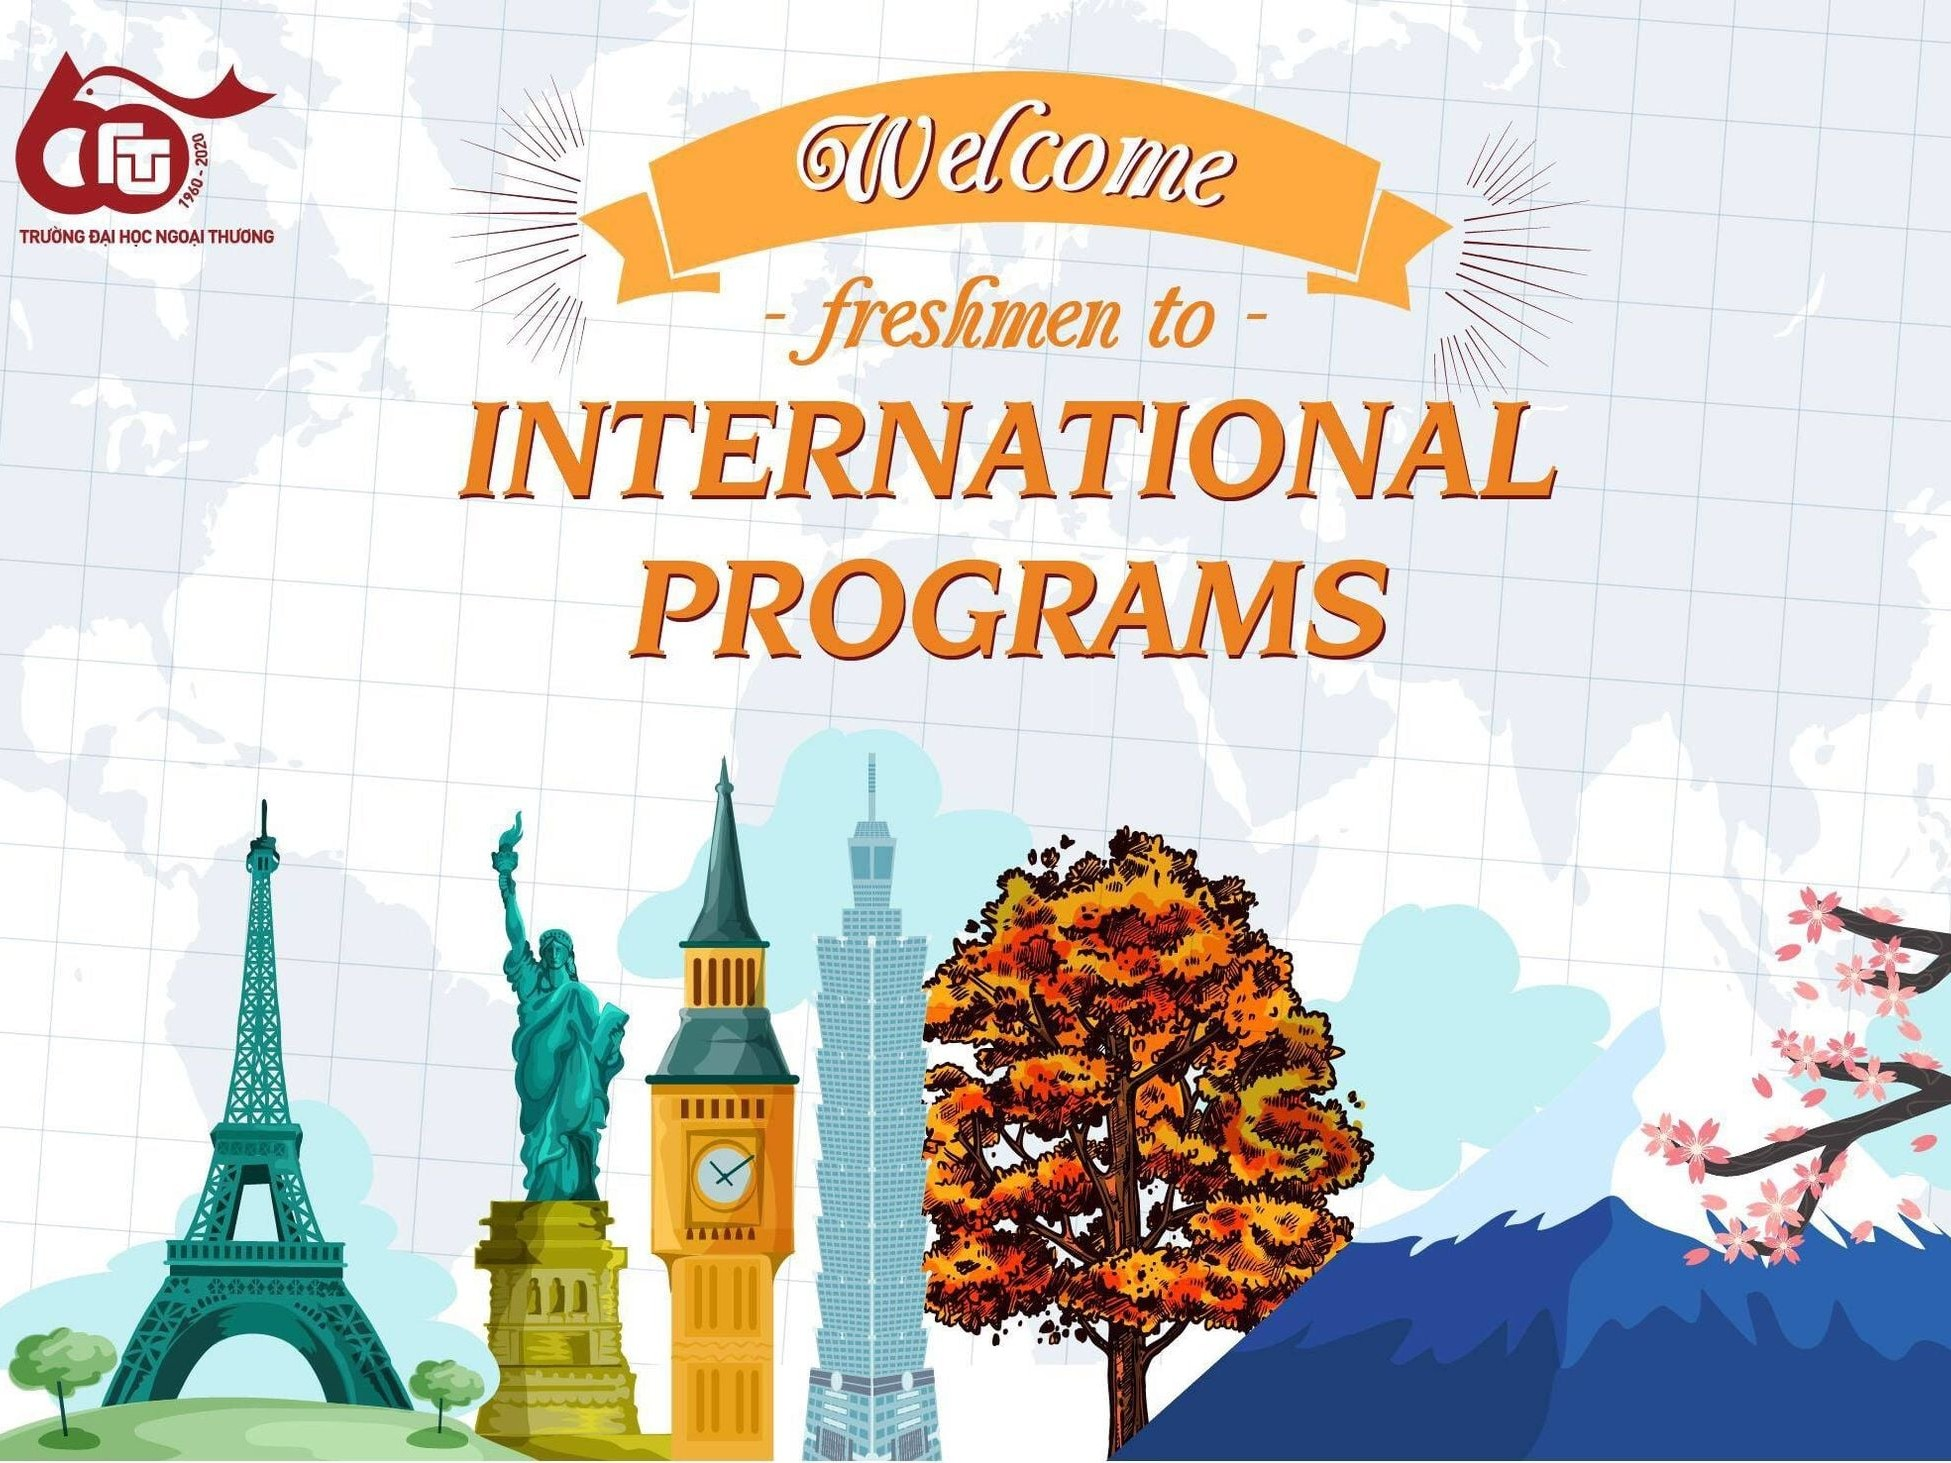 WELCOME FRESHMAN TO INTERNATIONAL PROGRAMS!